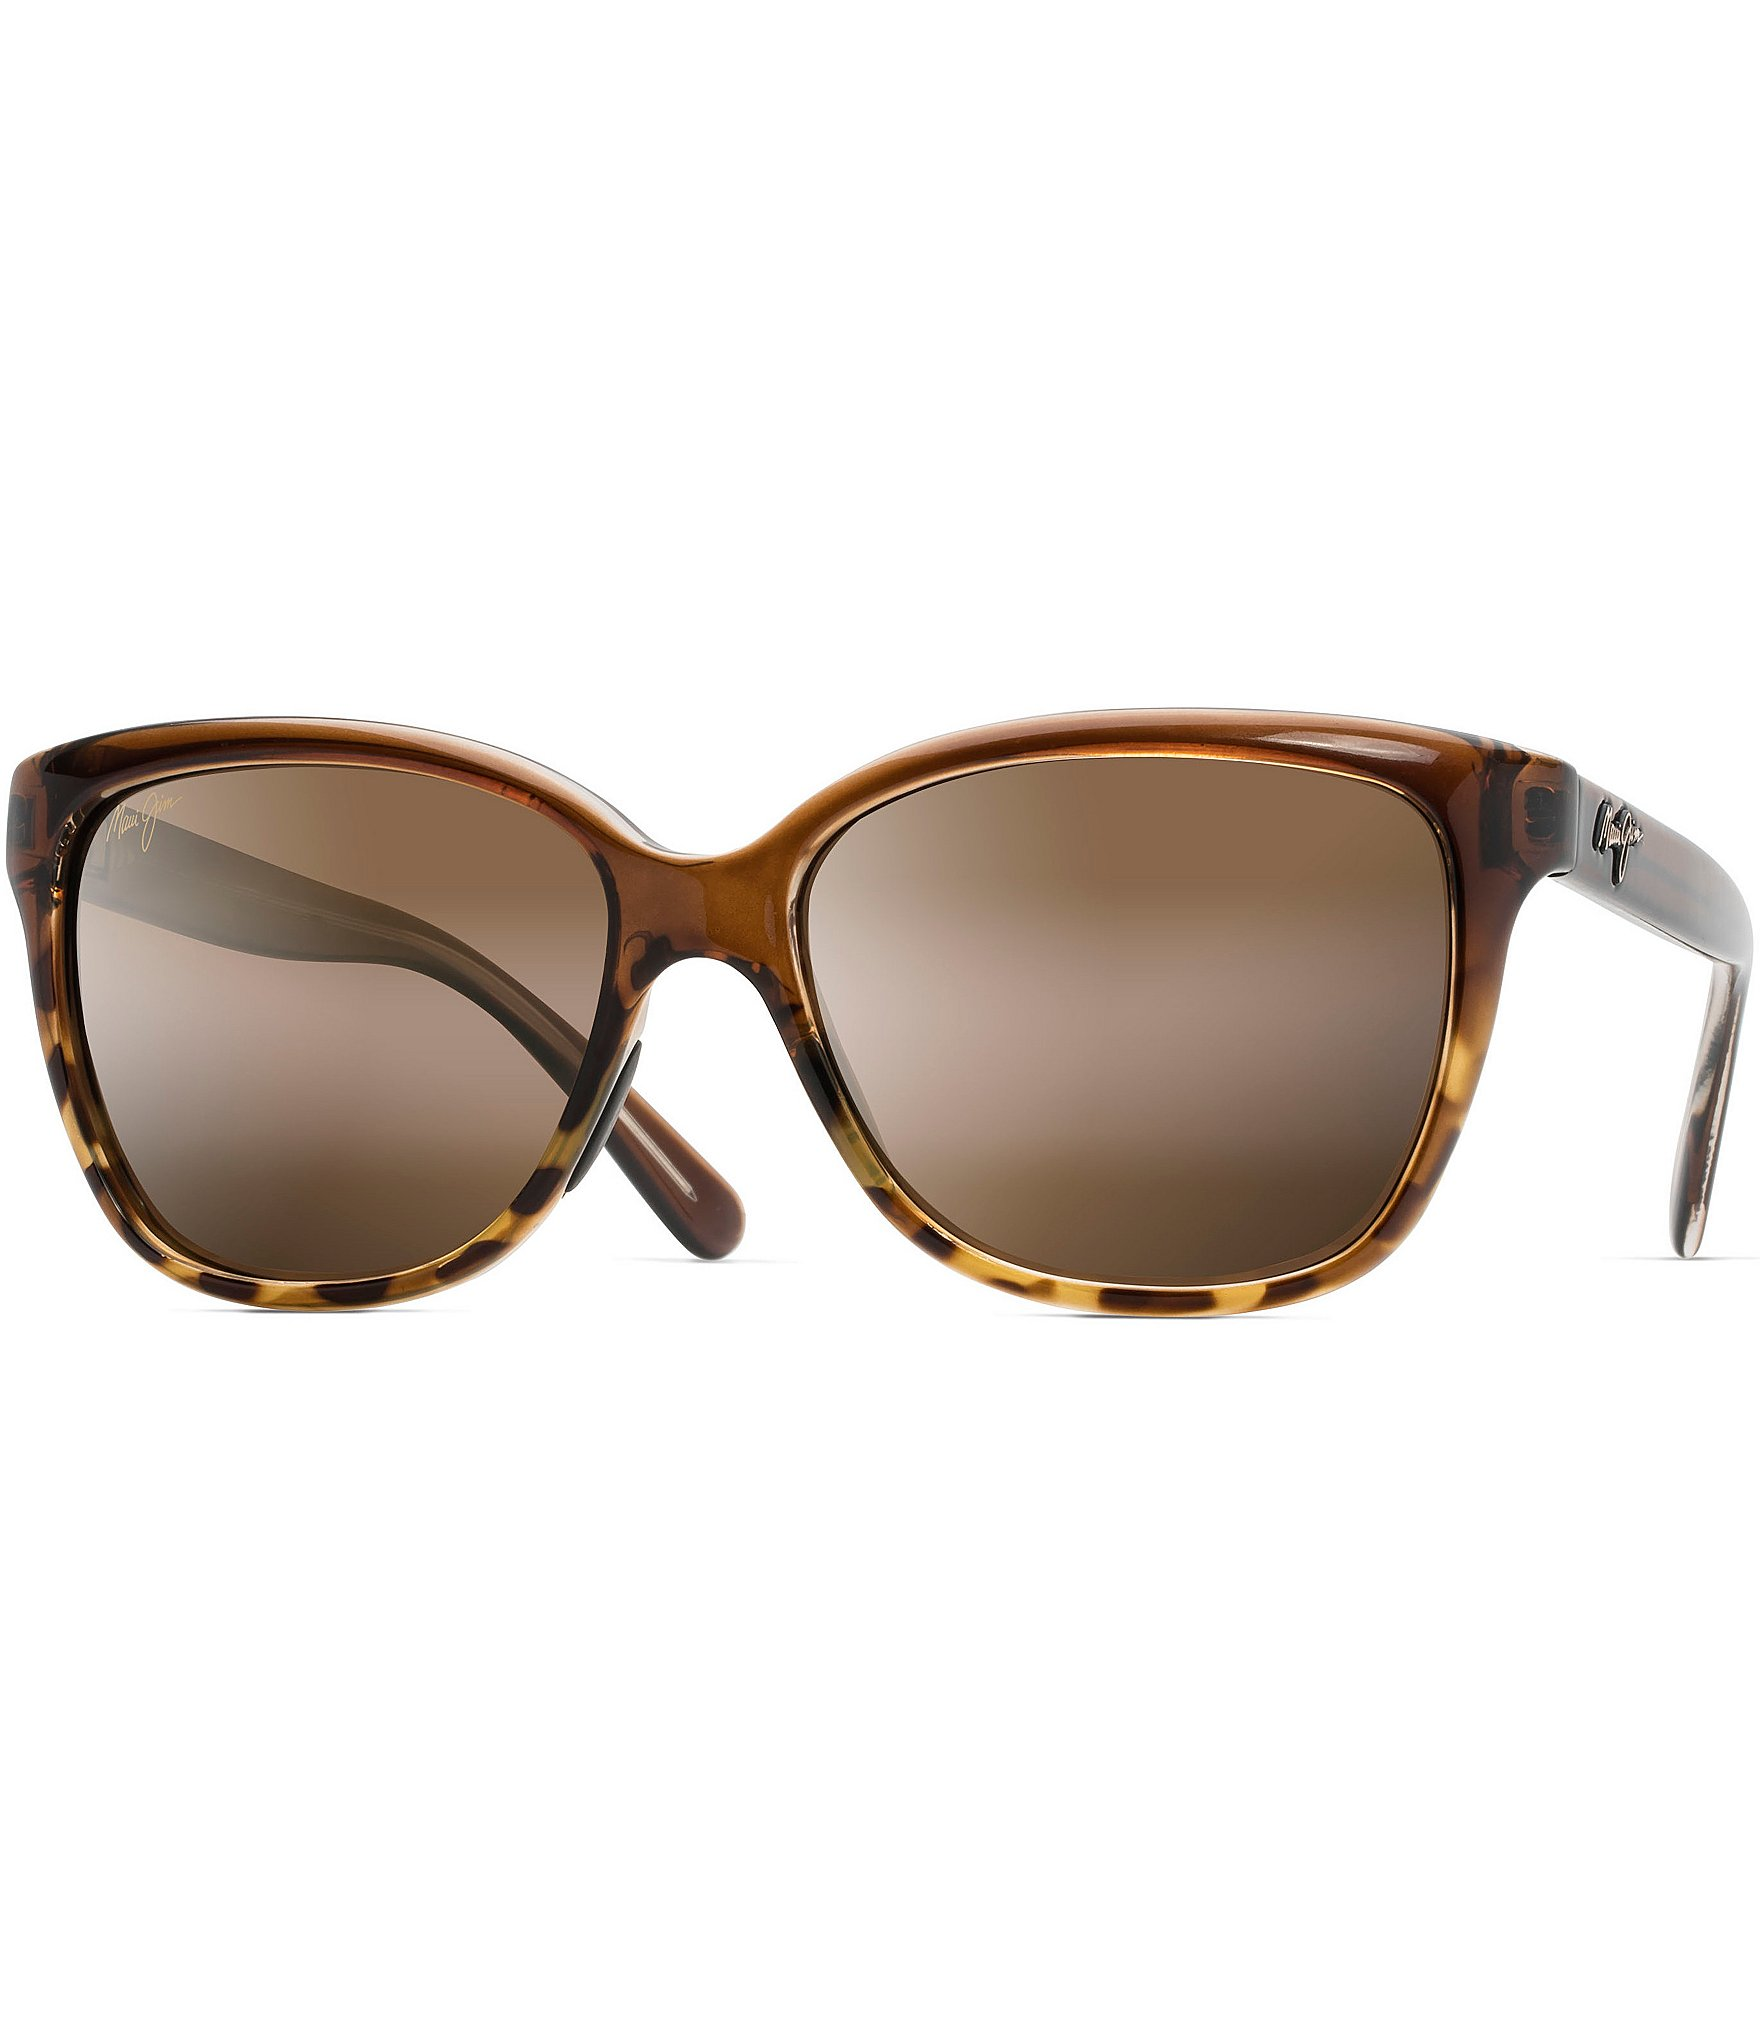 86d04a0e09 Brown Women s Cat-Eye Sunglasses